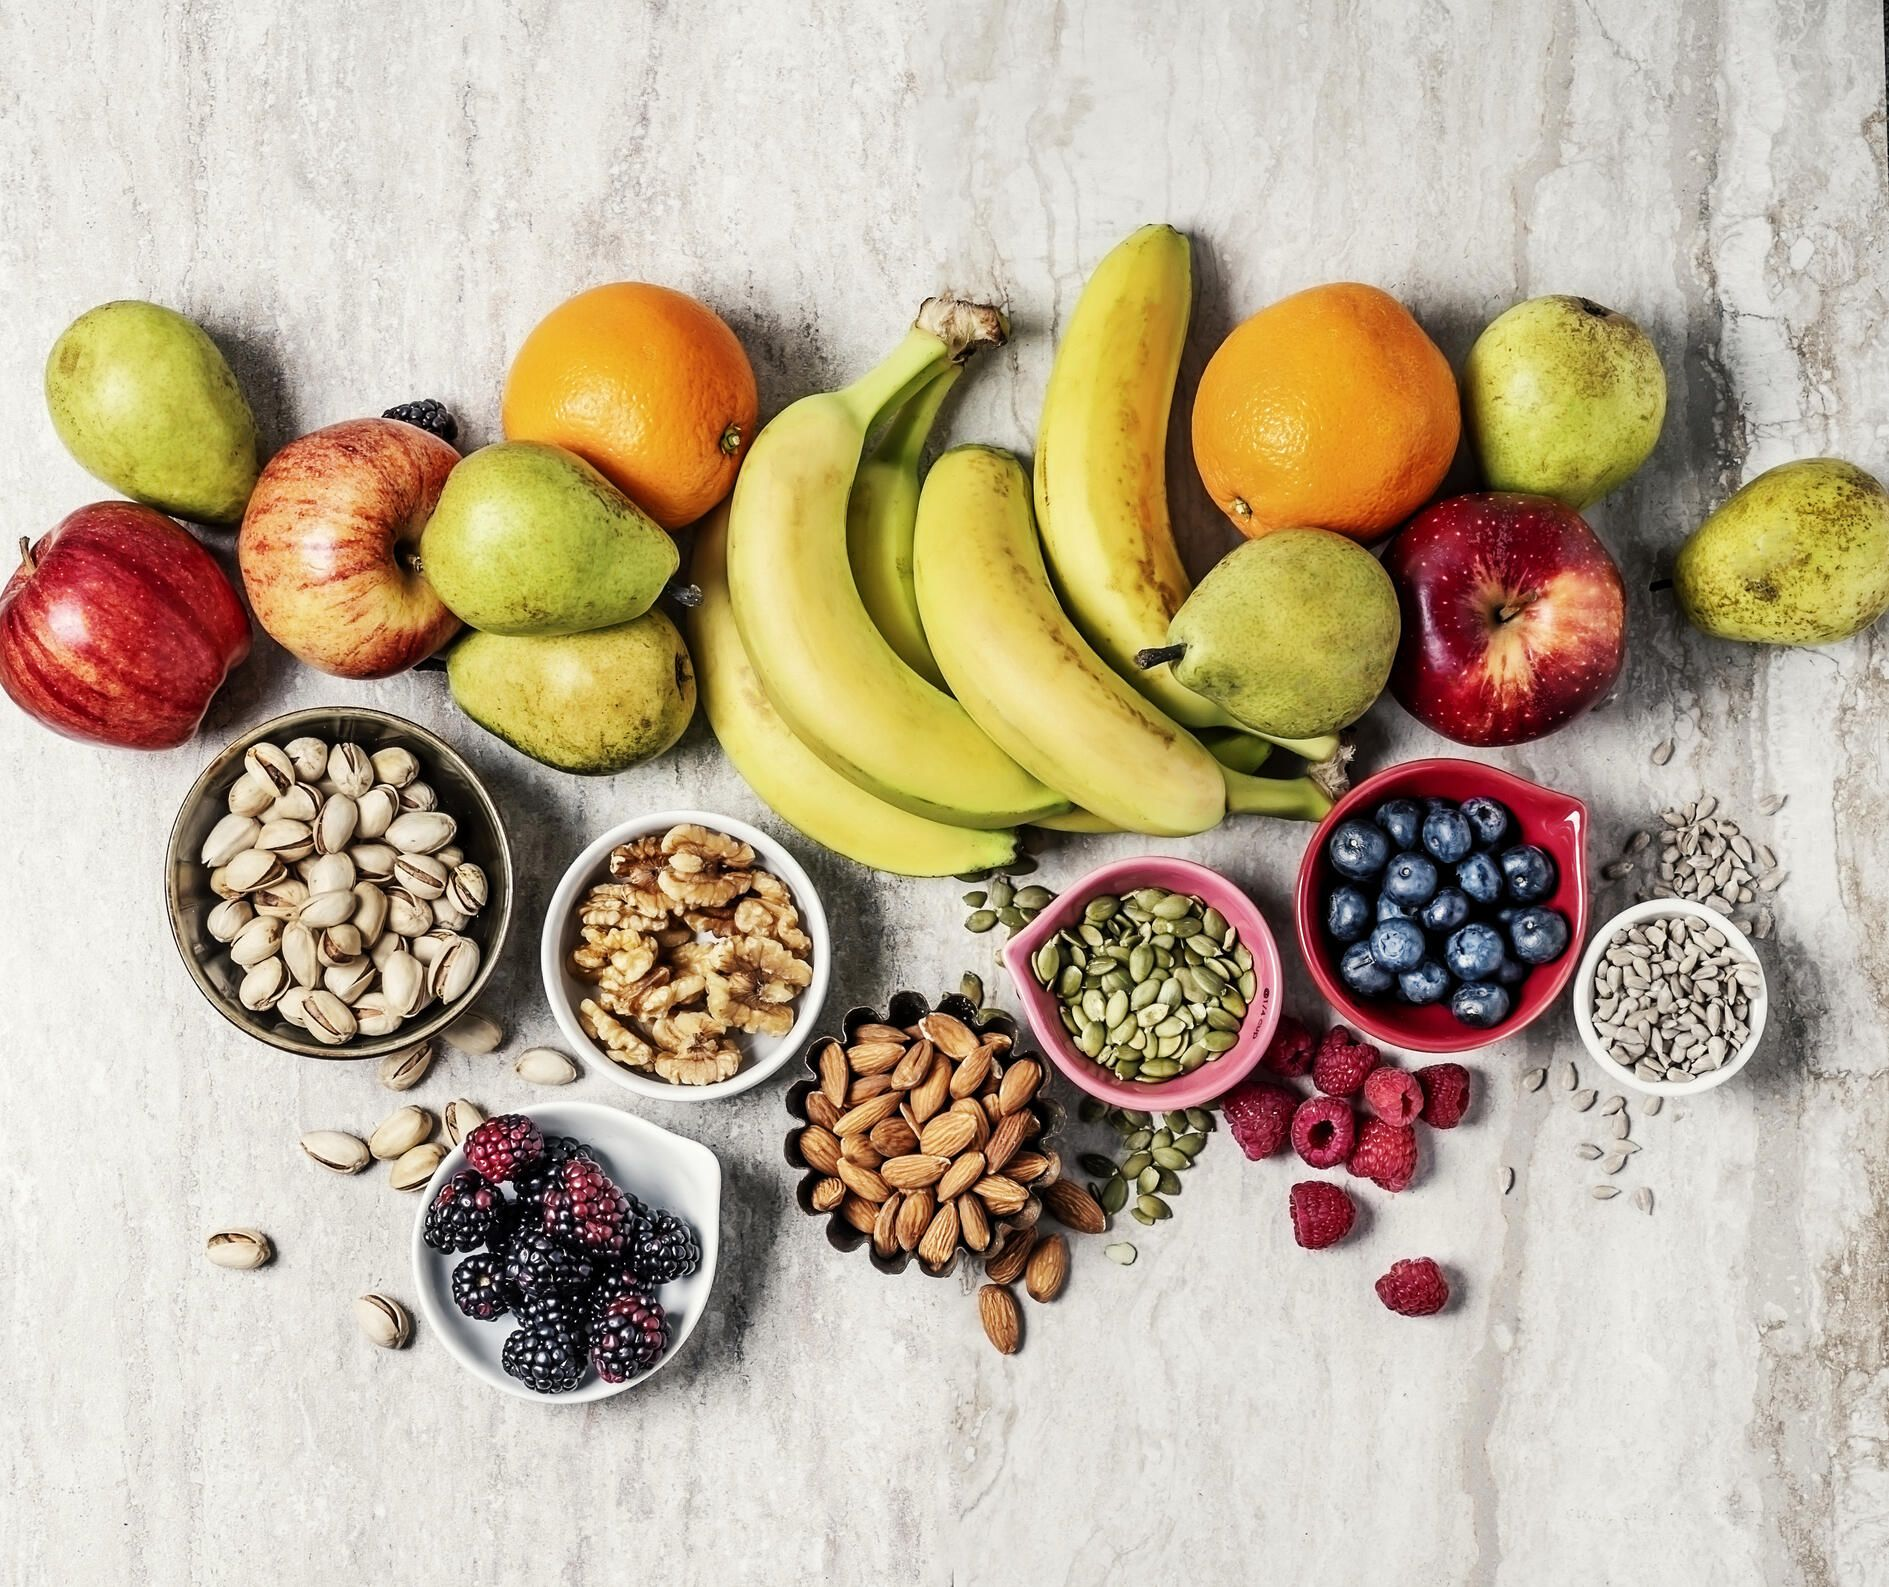 bird's eye view of fruits, nuts and seeds on a granite countertop